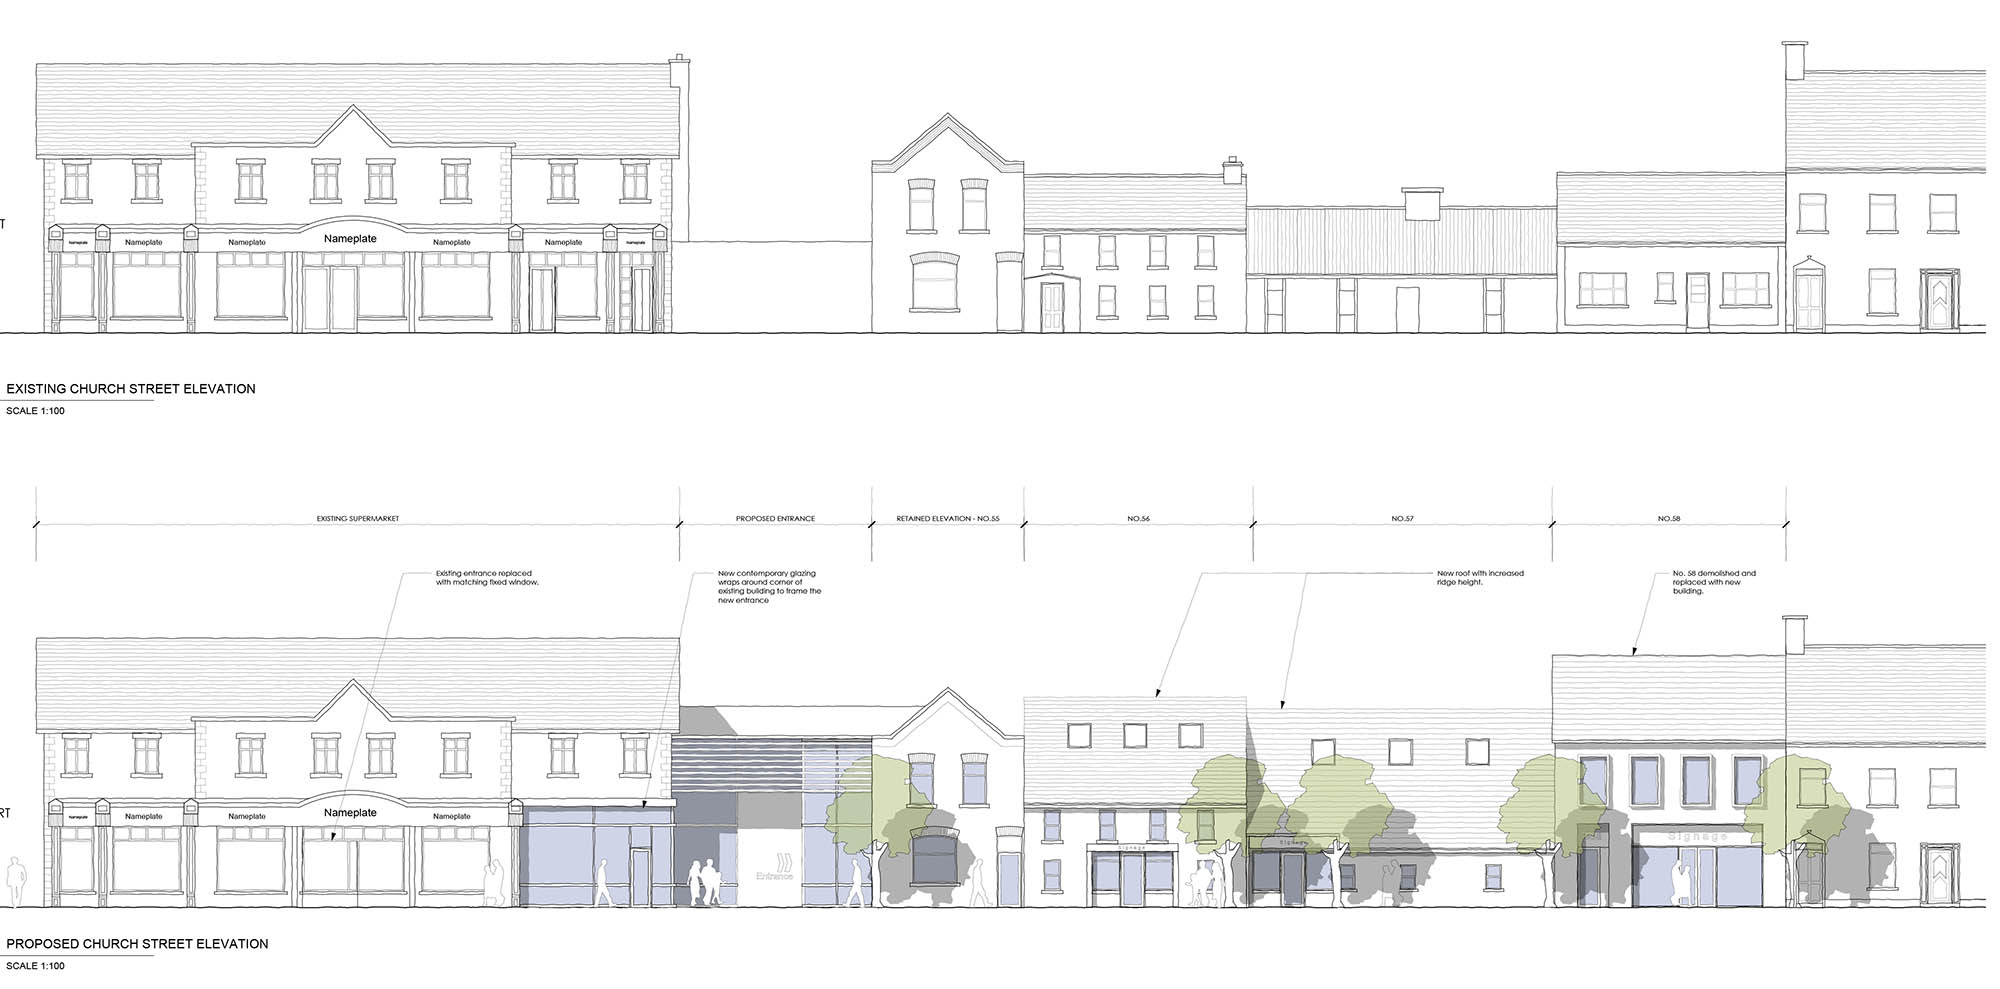 Skerries Existing Church Street Elevation and Proposed Church Street Elevation Restoration and Development plans by Hoban Design Architects